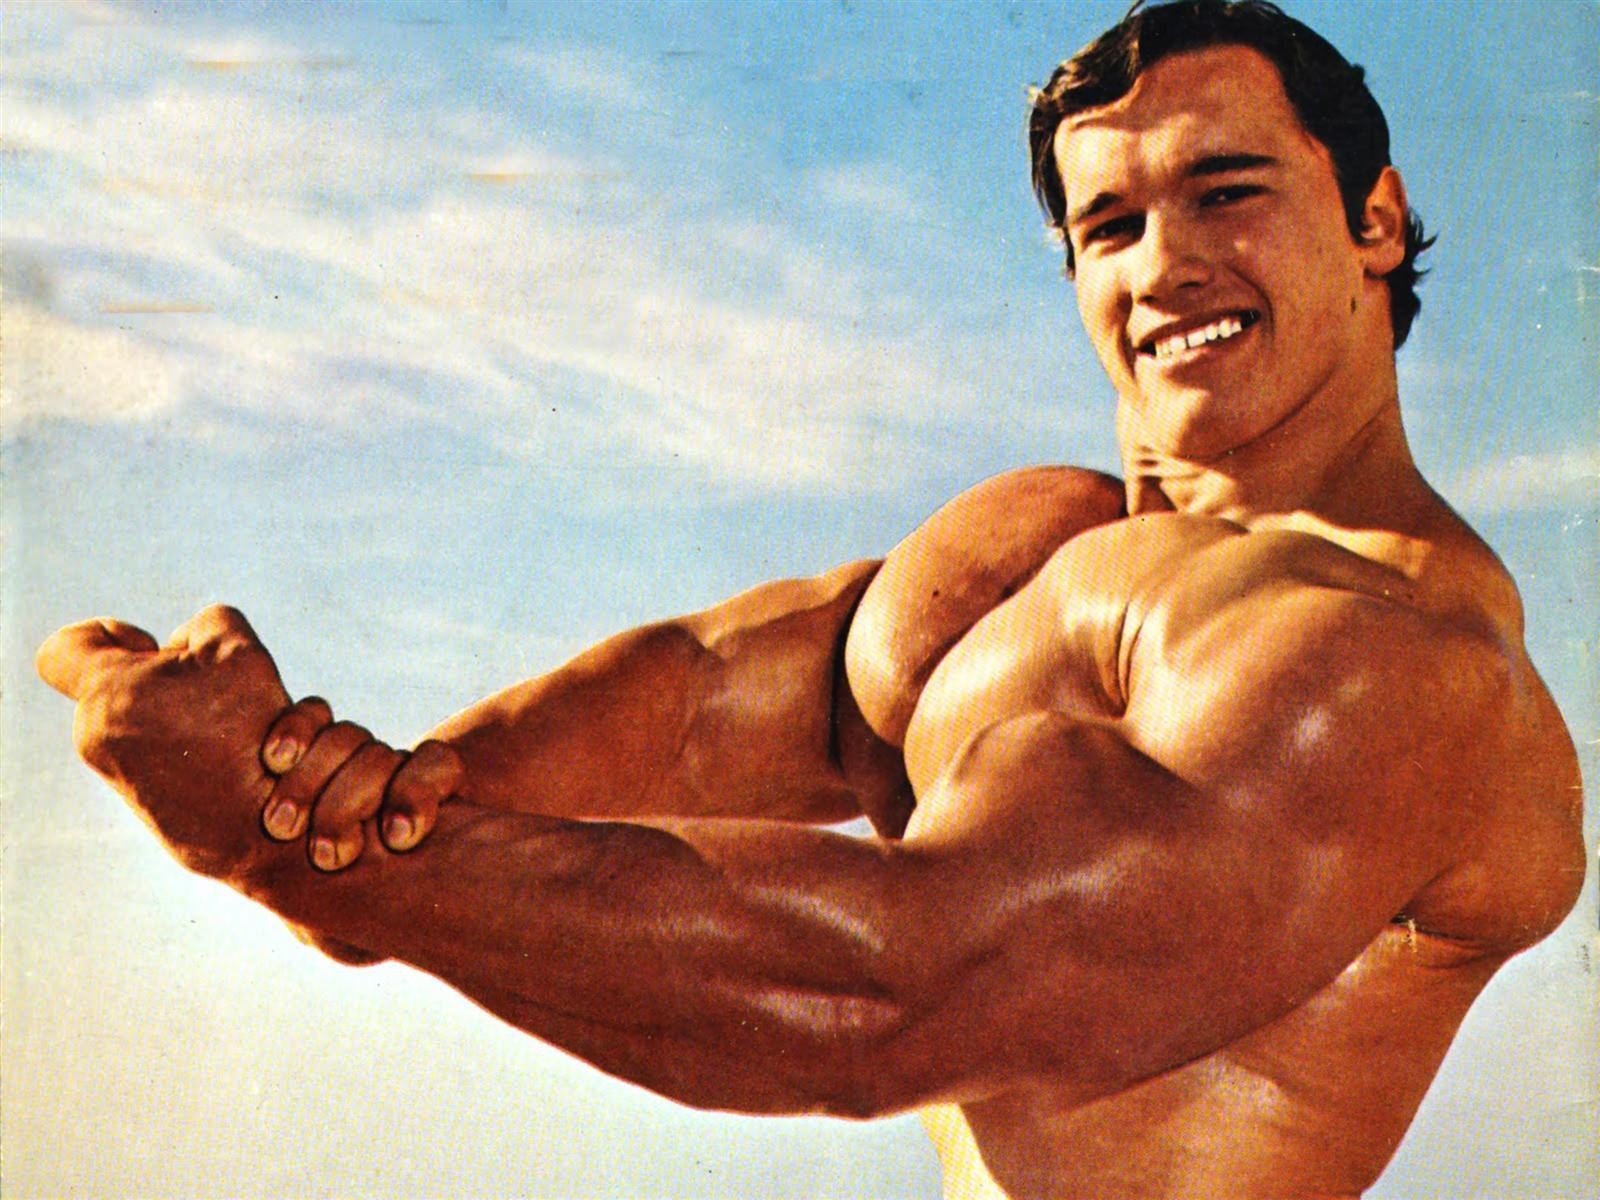 arnold schwarzenegger bodybuilder wallpaper - Orion Advisor Services Pumps Up Financial Planning with ASI Integration